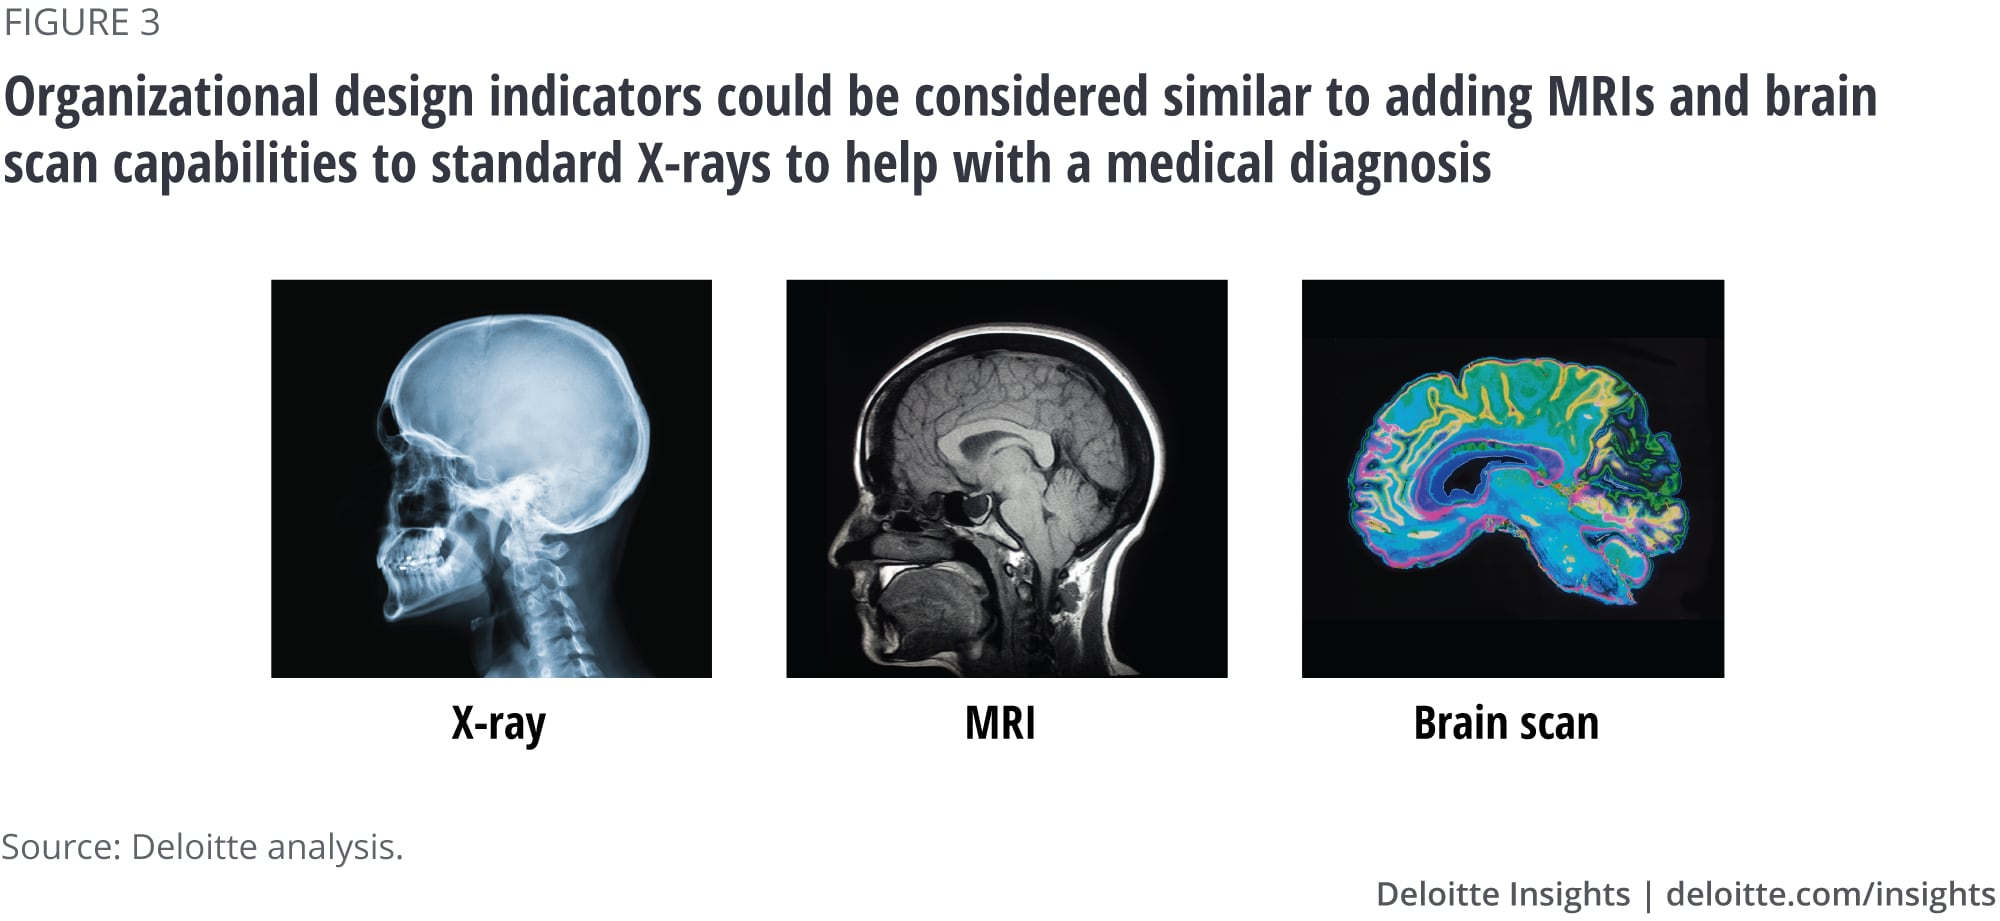 Organizational design indicators could be considered similar to adding MRIs and brain scan capabilities to standard X-rays to help with a medical diagnosis